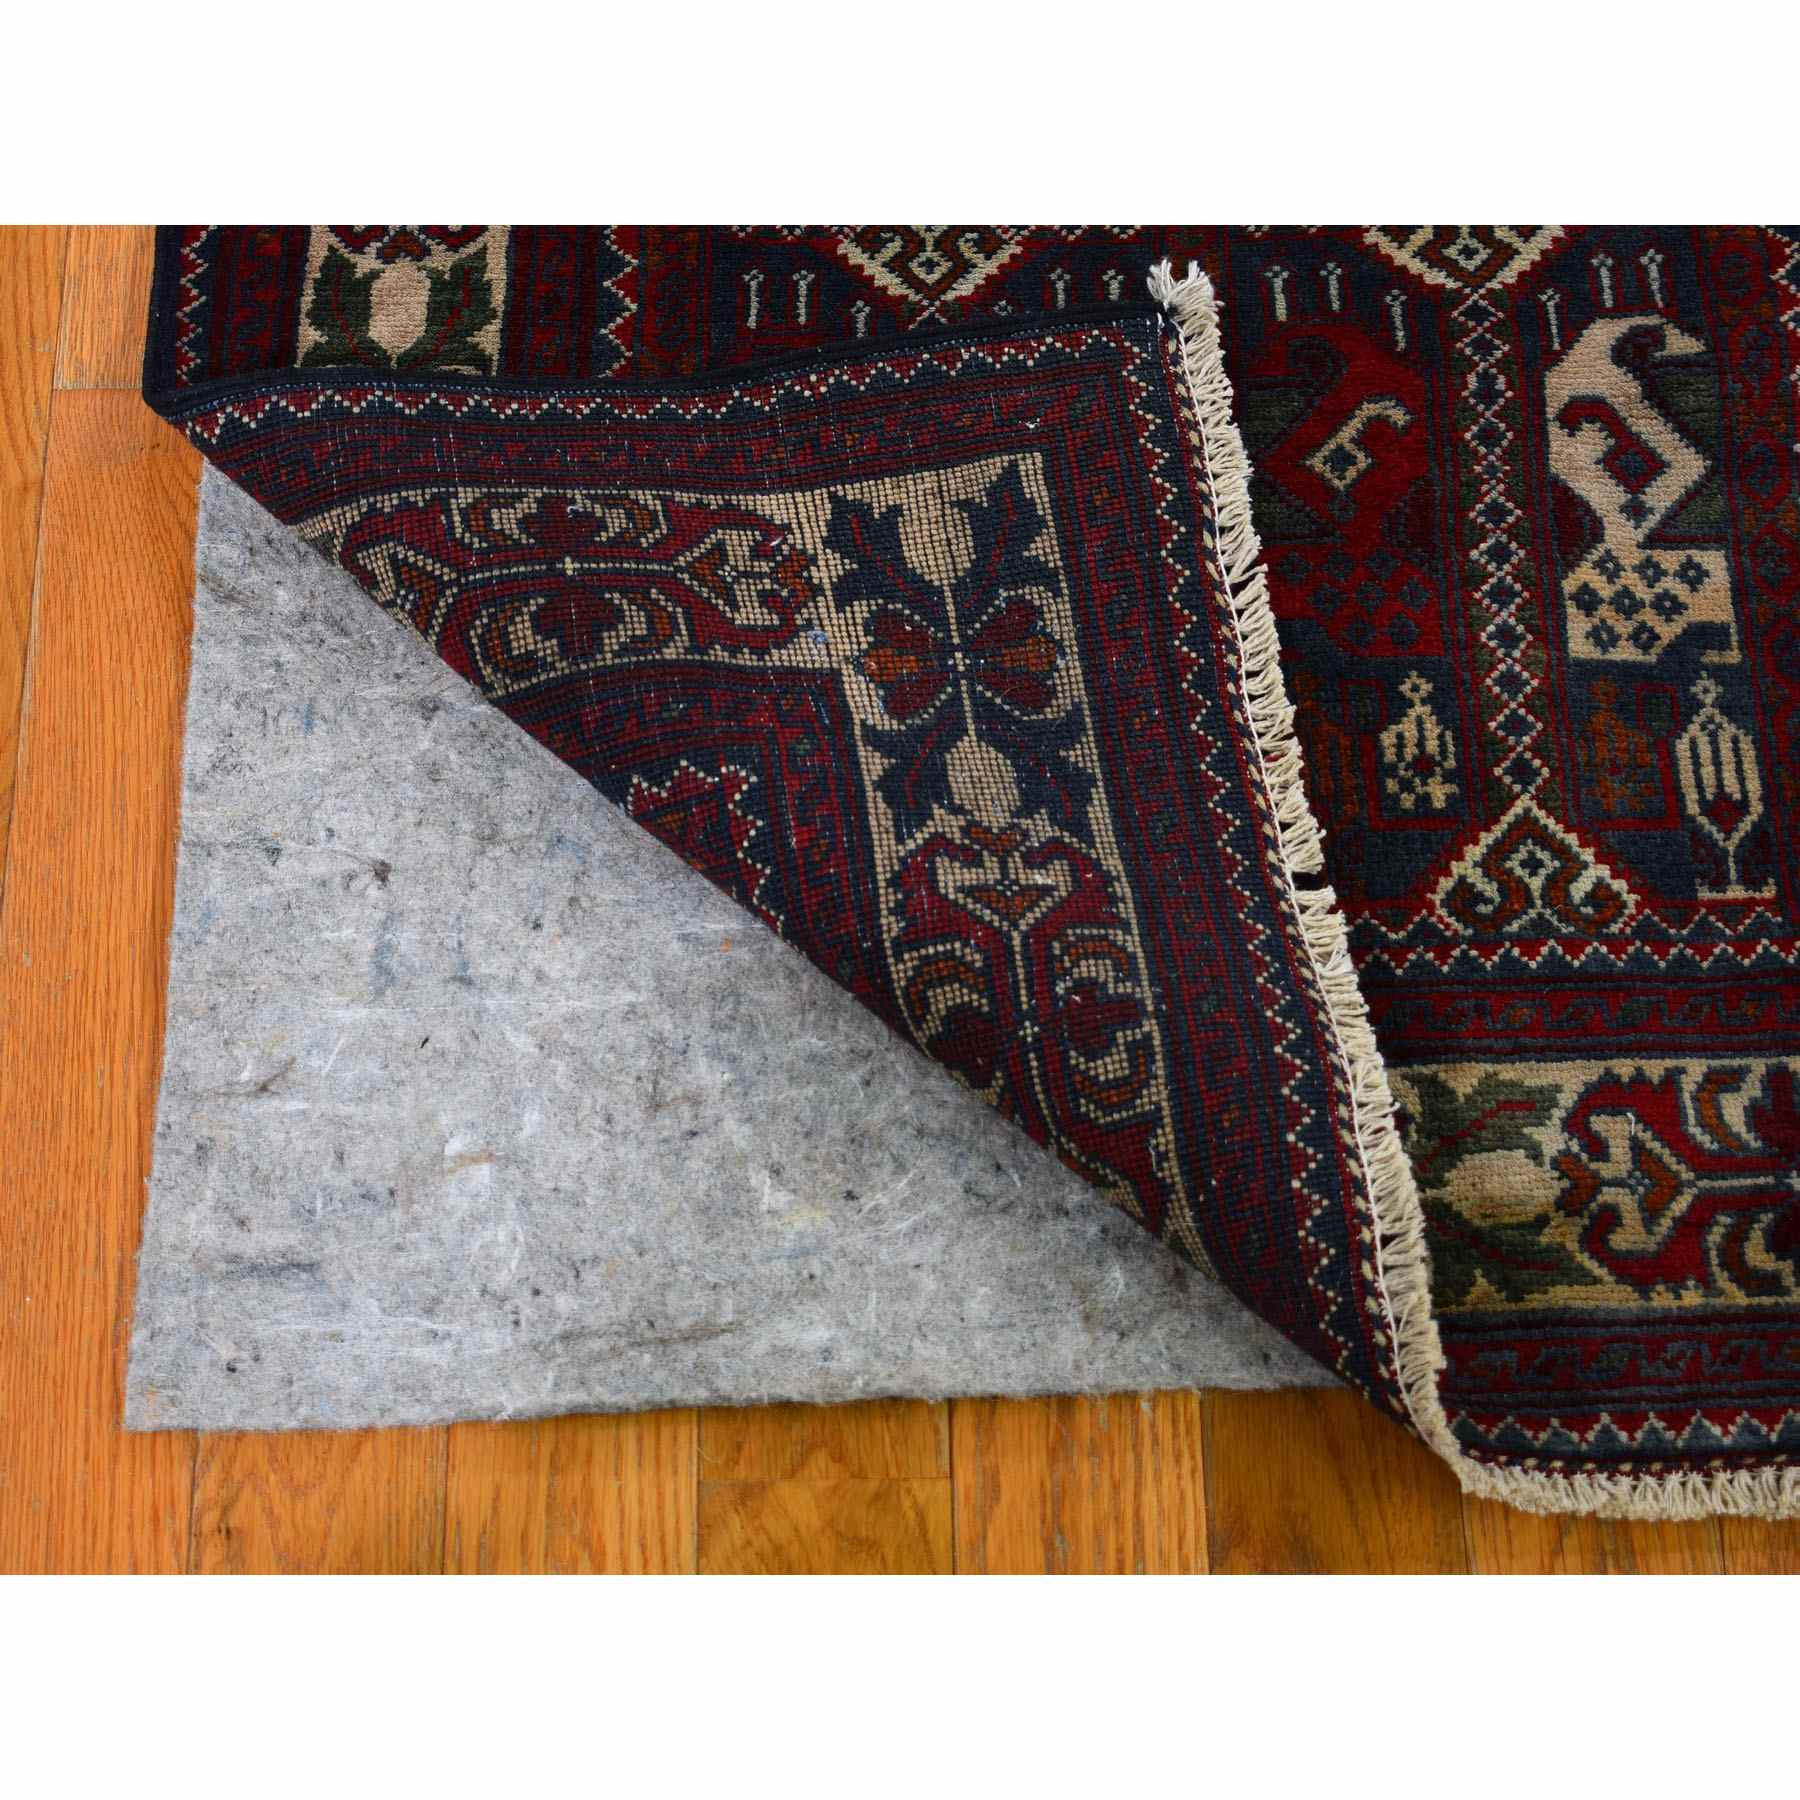 Tribal-Geometric-Hand-Knotted-Rug-246070